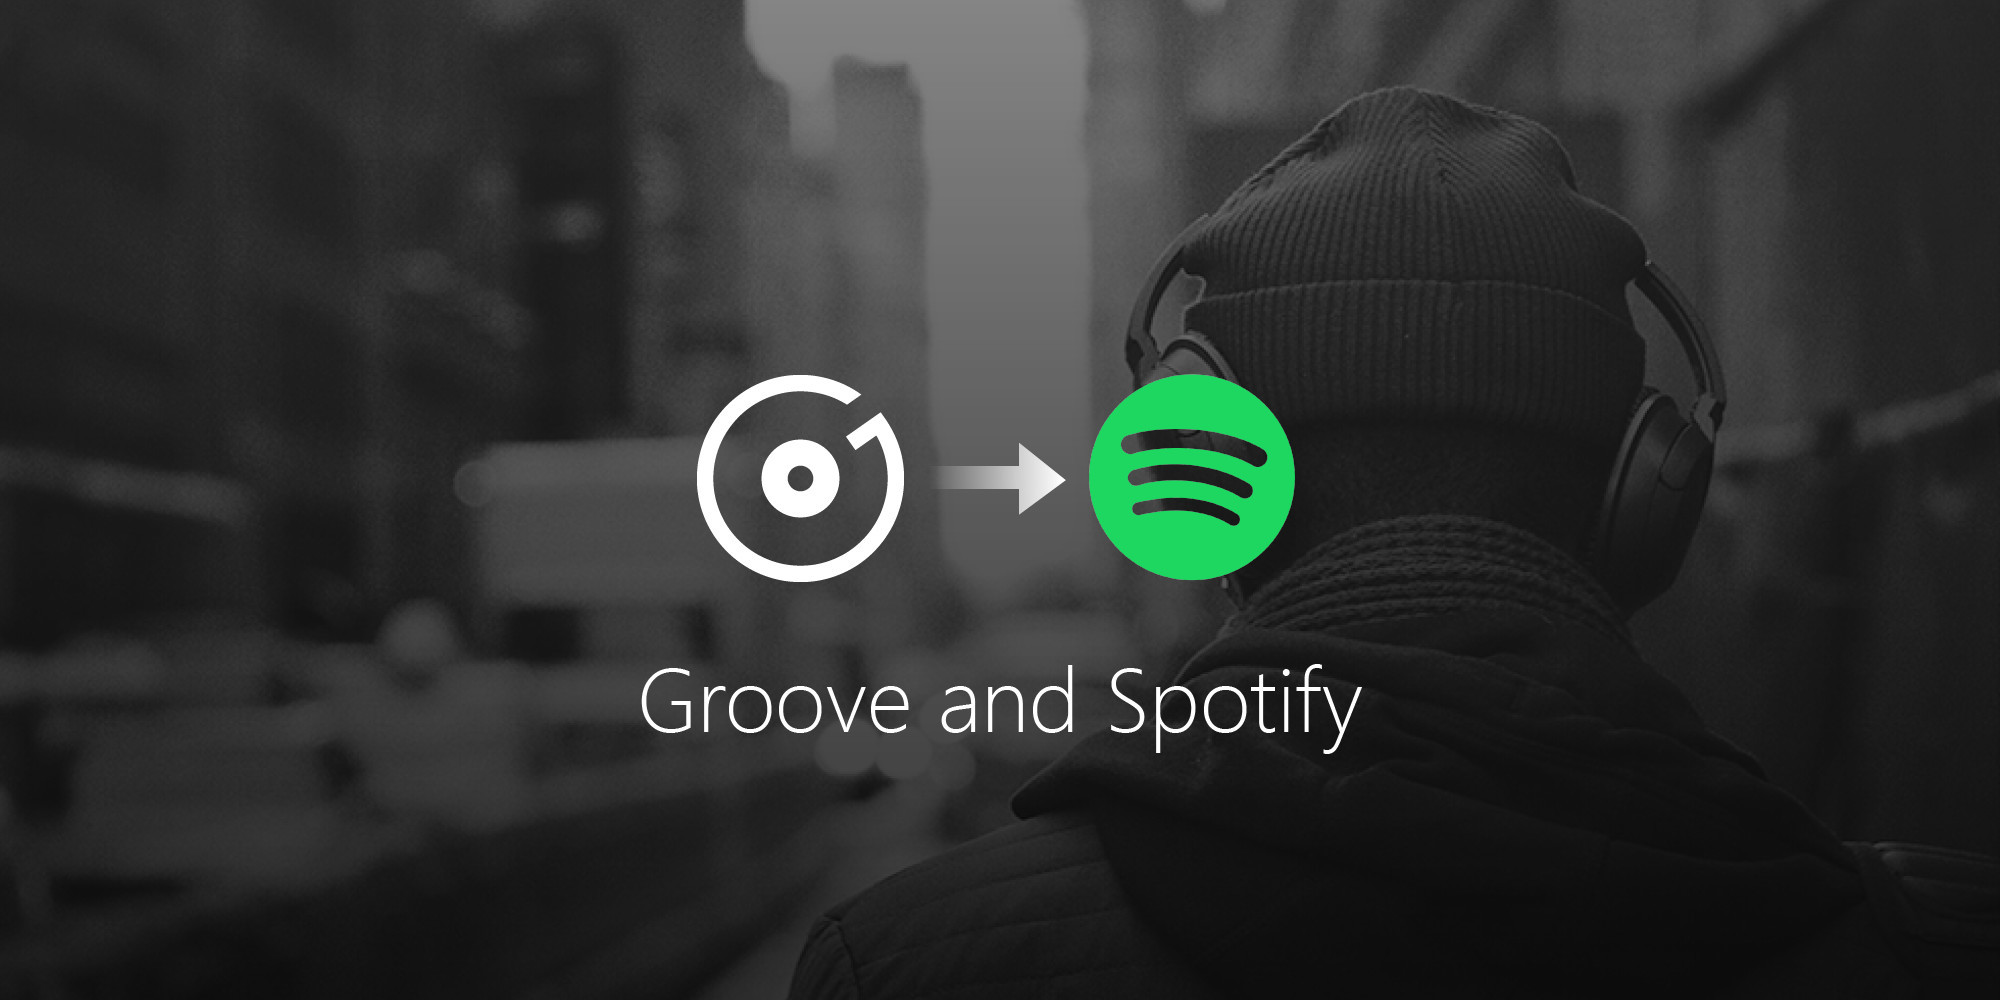 Microsoft Is Ending Groove Music, Here's What You Need To Know